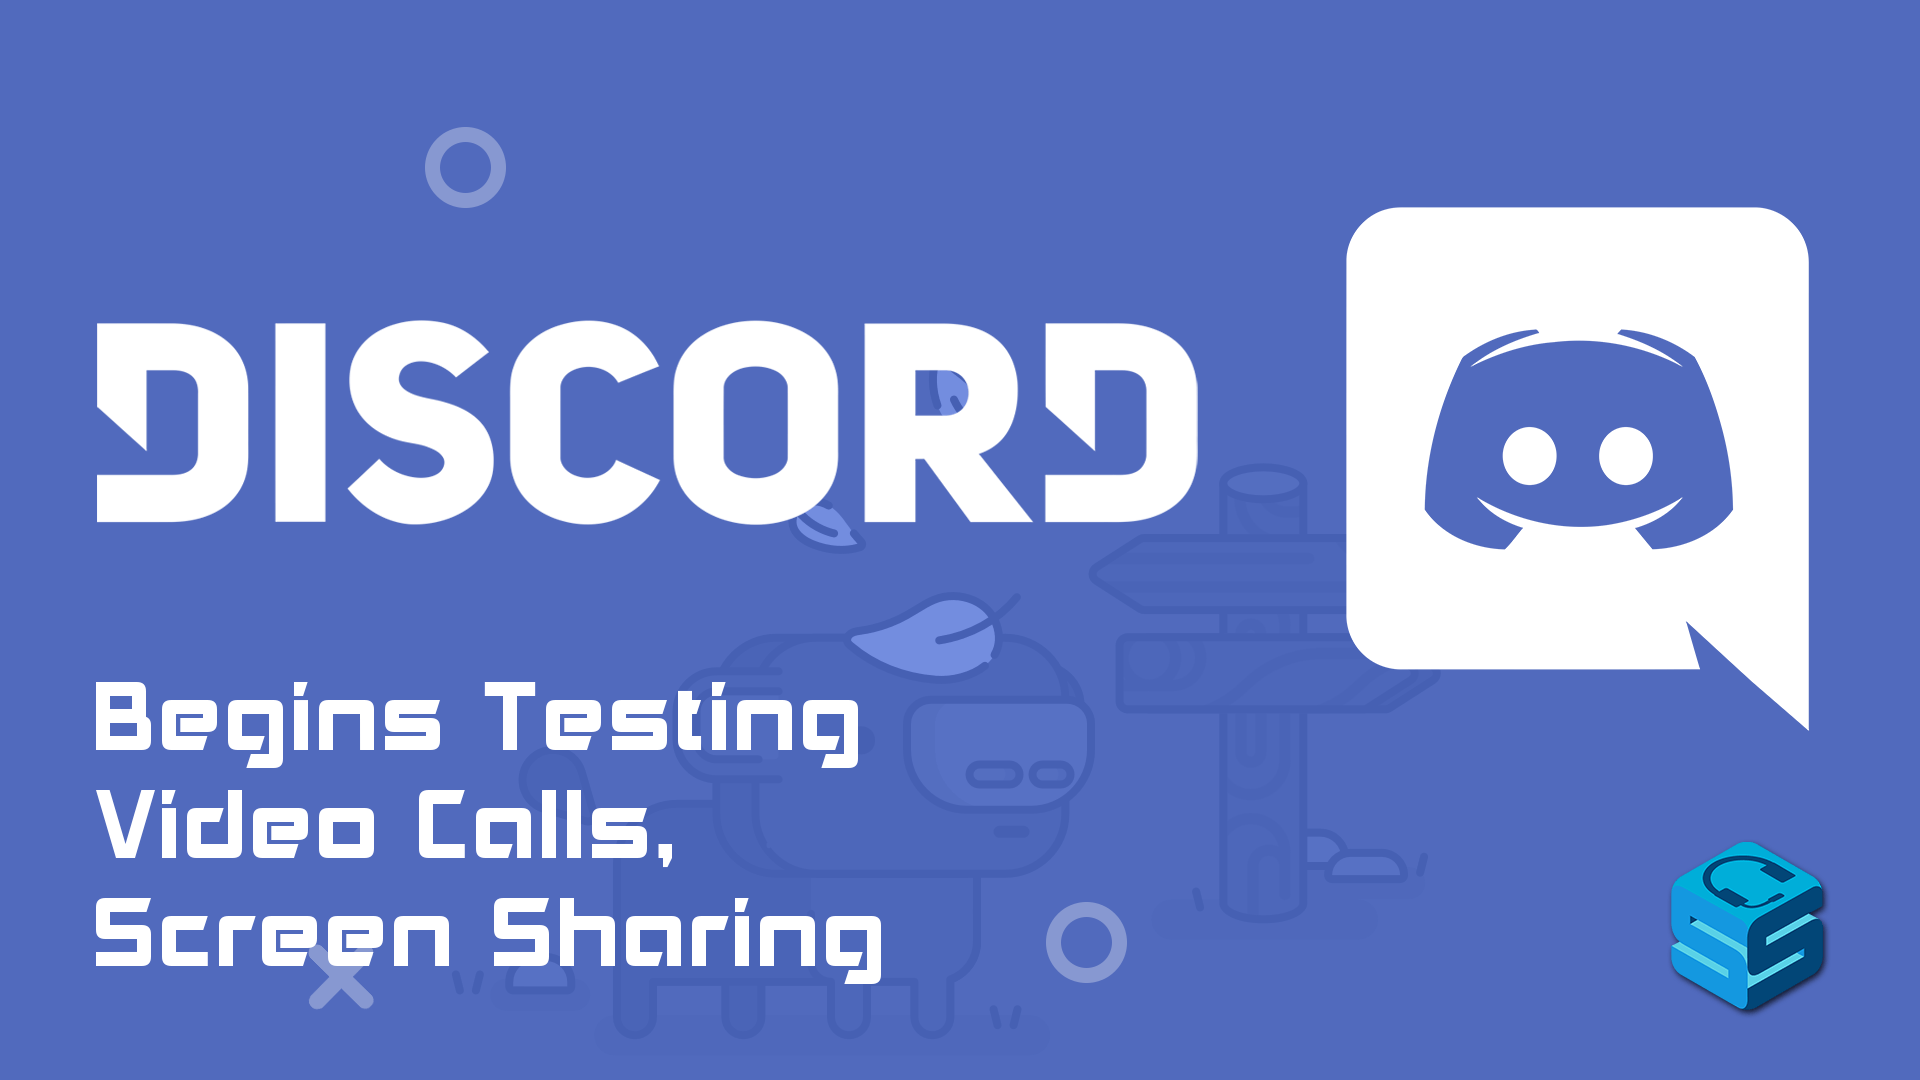 Discord Begins Testing Video Chat and Screen Share - StreamerSquare